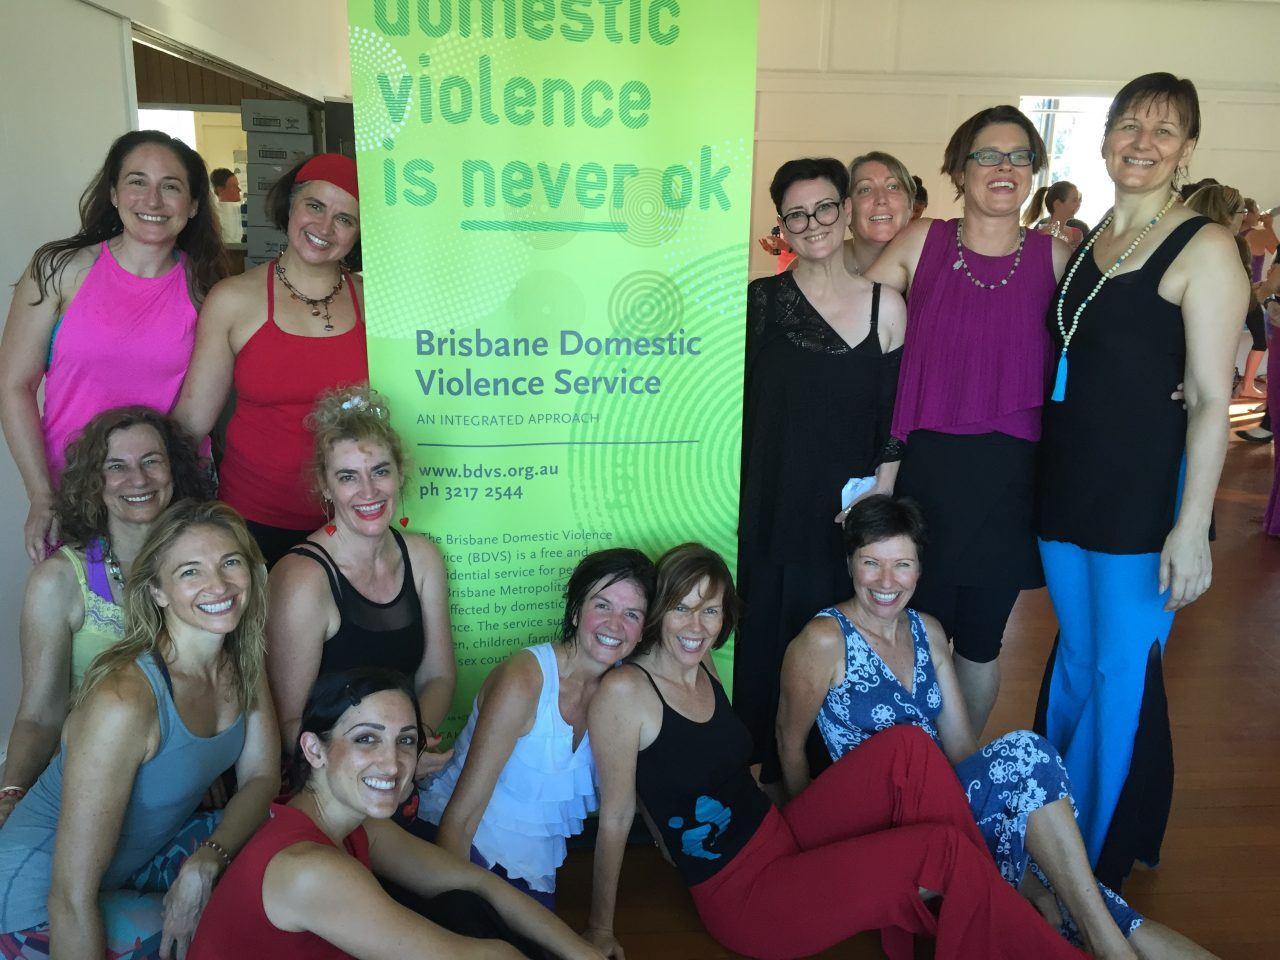 The Nia Brisbane community held a 'One Billion Rising Dance Jam' in February 2016 to raise funds for our Brisbane Domestic Violence Service. Photography: Robyn McDonald.